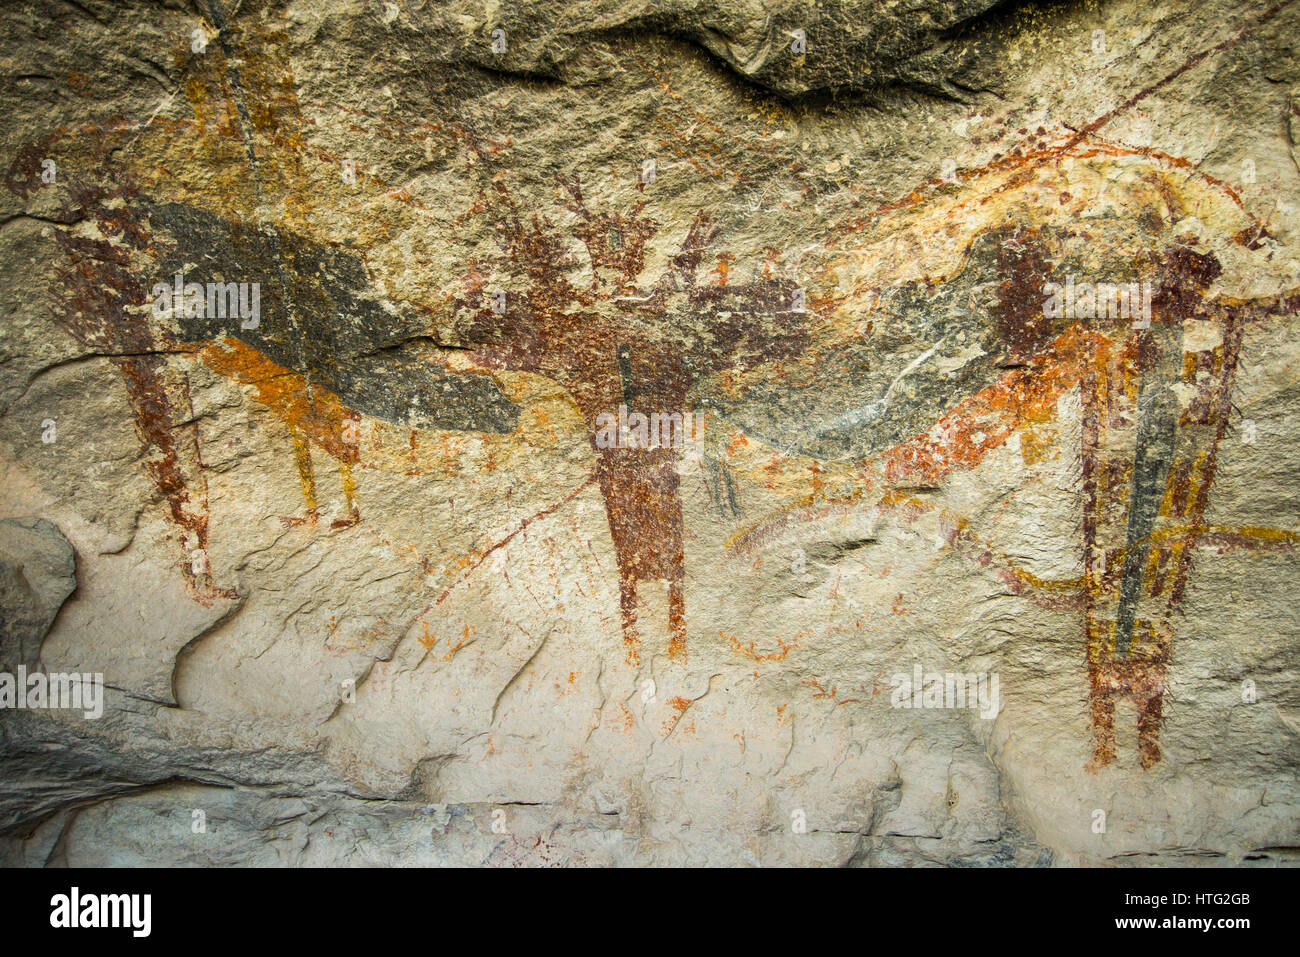 An historic Navajo pictograph drawn on a cave wall depicting people standing, Seminole Canyon, Texas - Stock Image